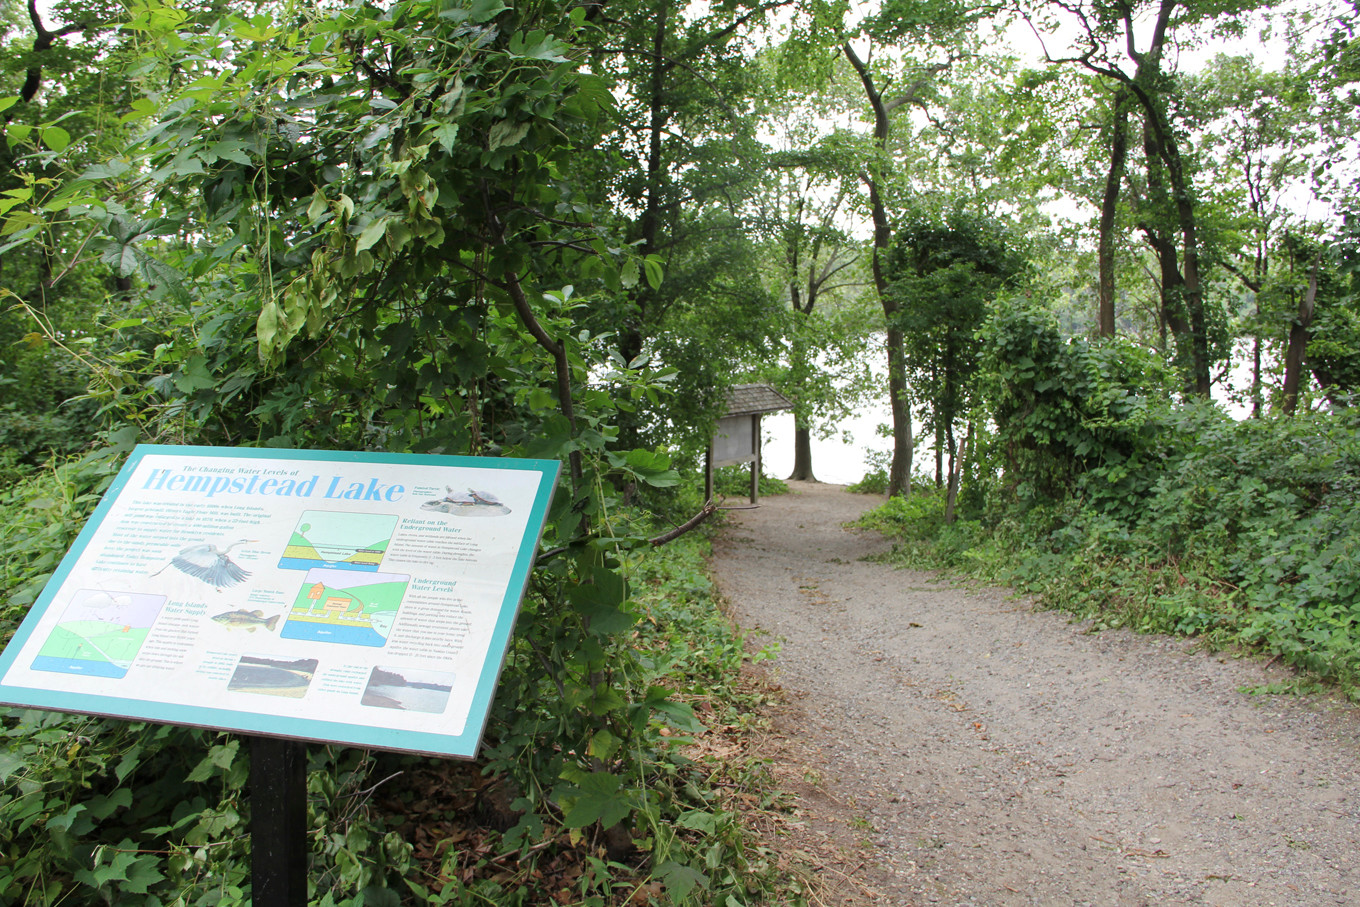 The Governor's Office of Storm Recovery is seeking to renovate Hempstead Lake State Park, but residents are concerned about the environmental and historical impact.